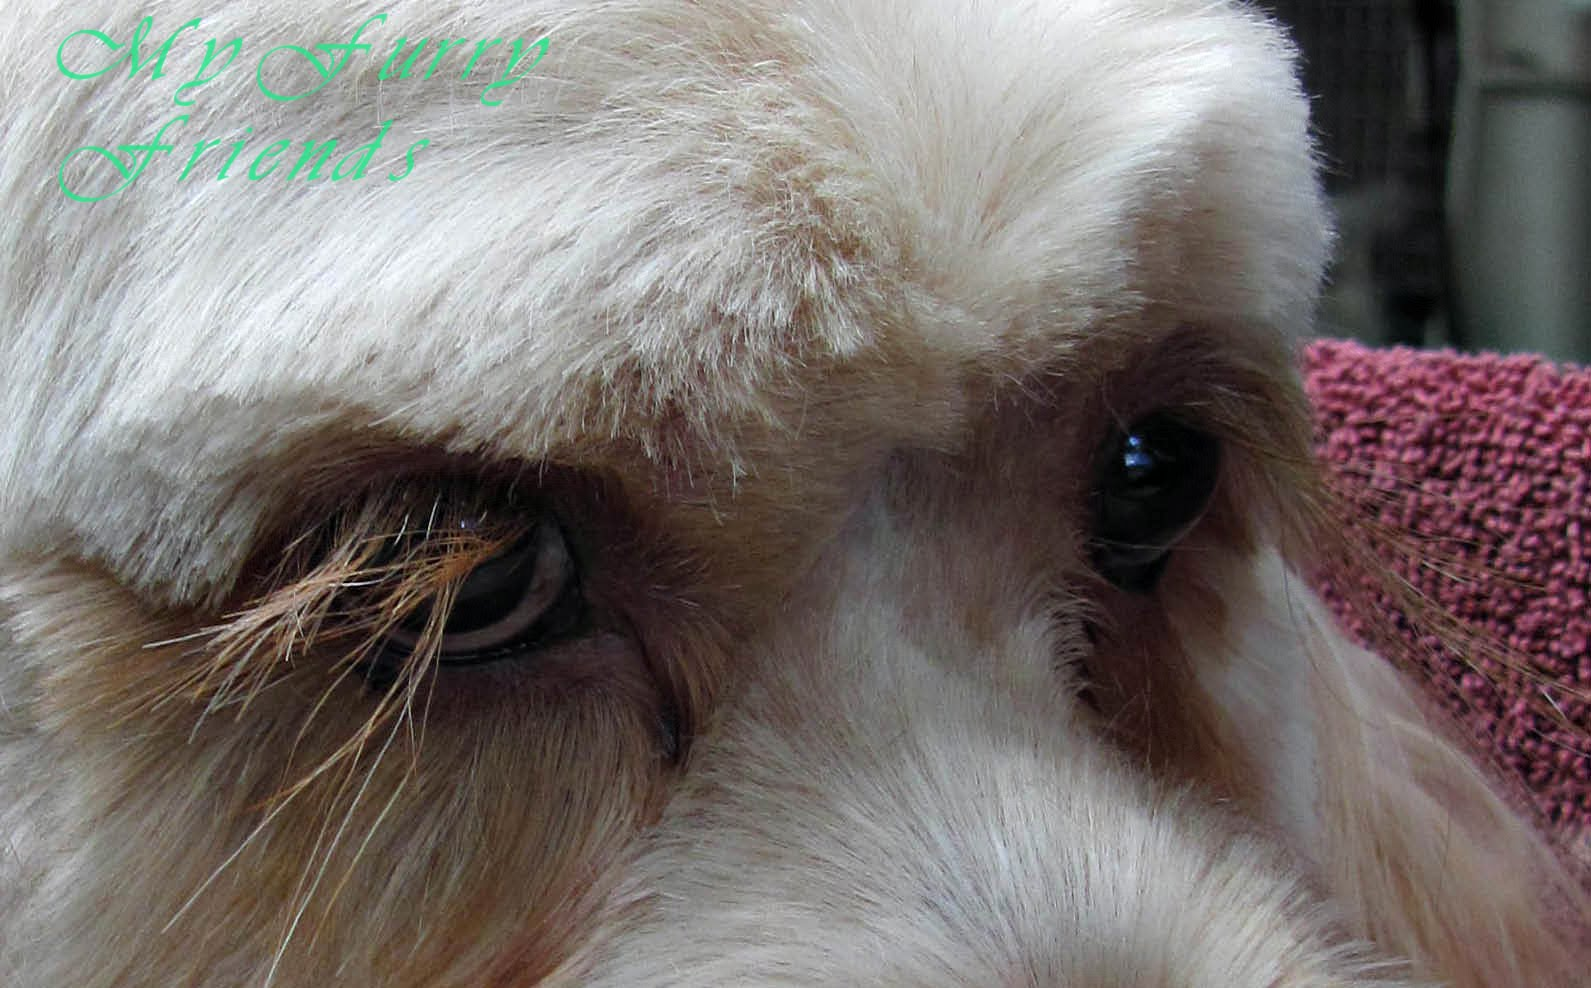 Pet Grooming: The Good, The Bad, & The Furry: Do NOT cut the lashes!